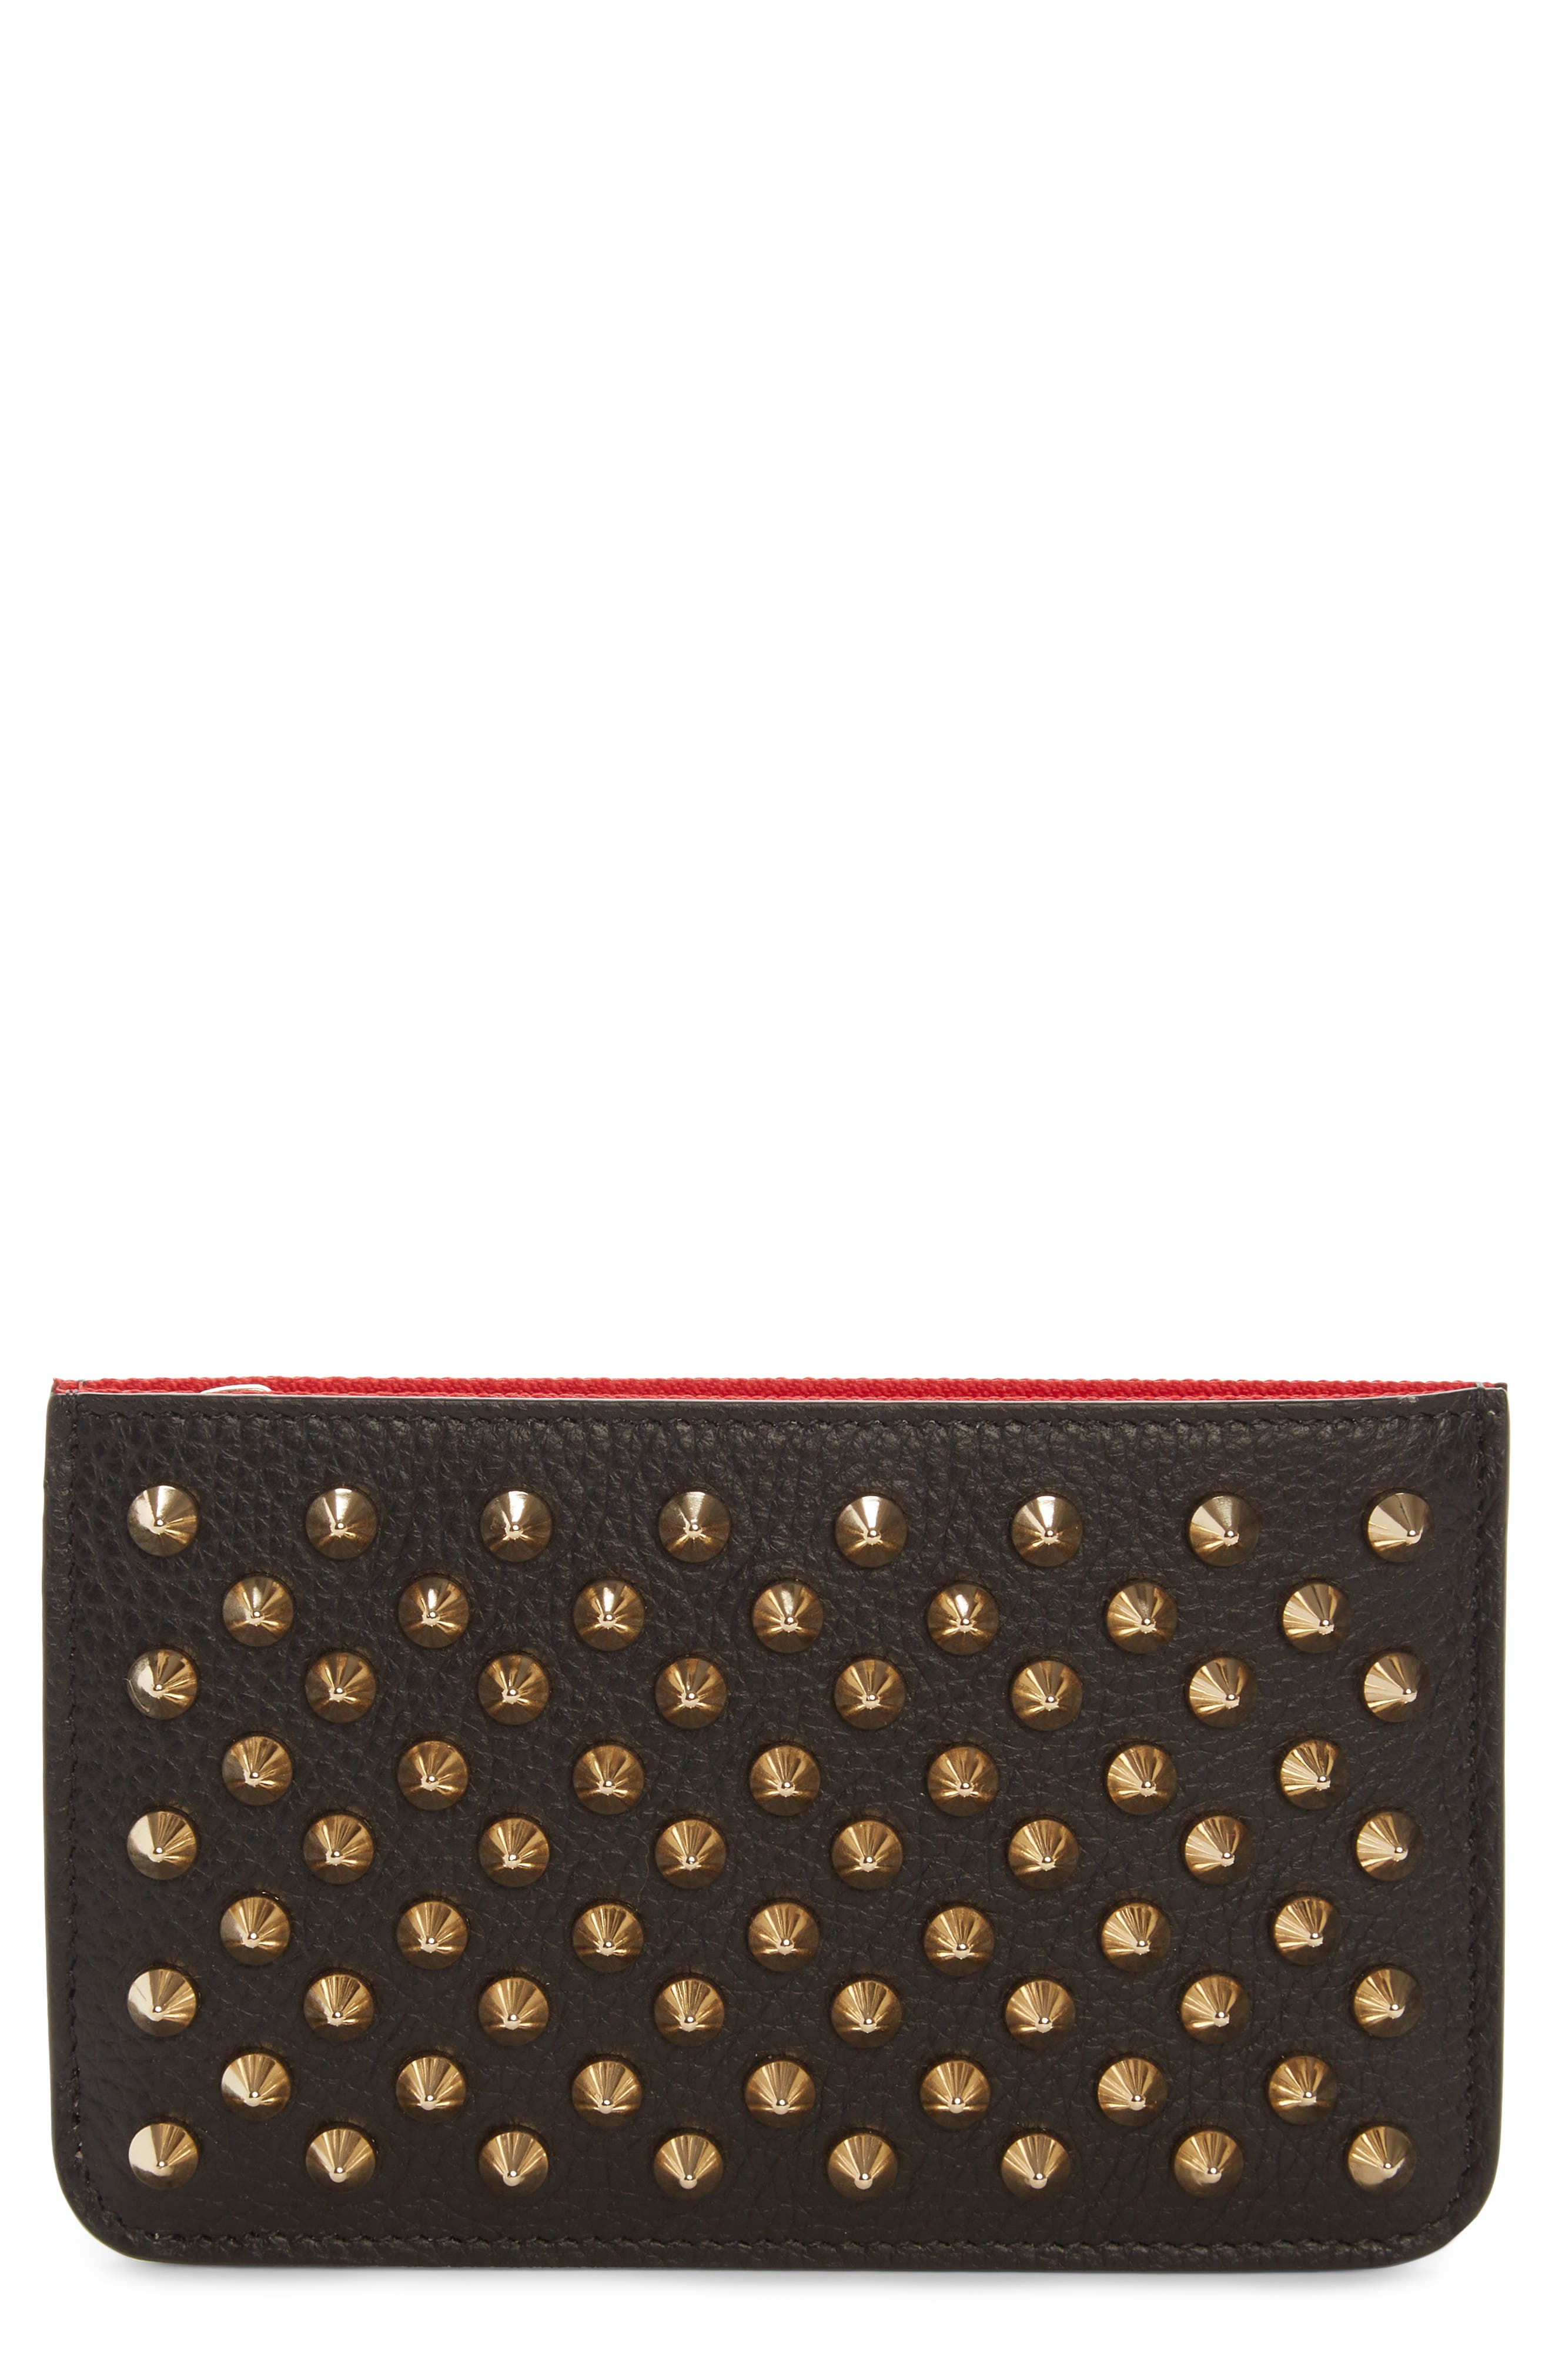 Panettone Studded Leather Key Case,                             Main thumbnail 1, color,                             012